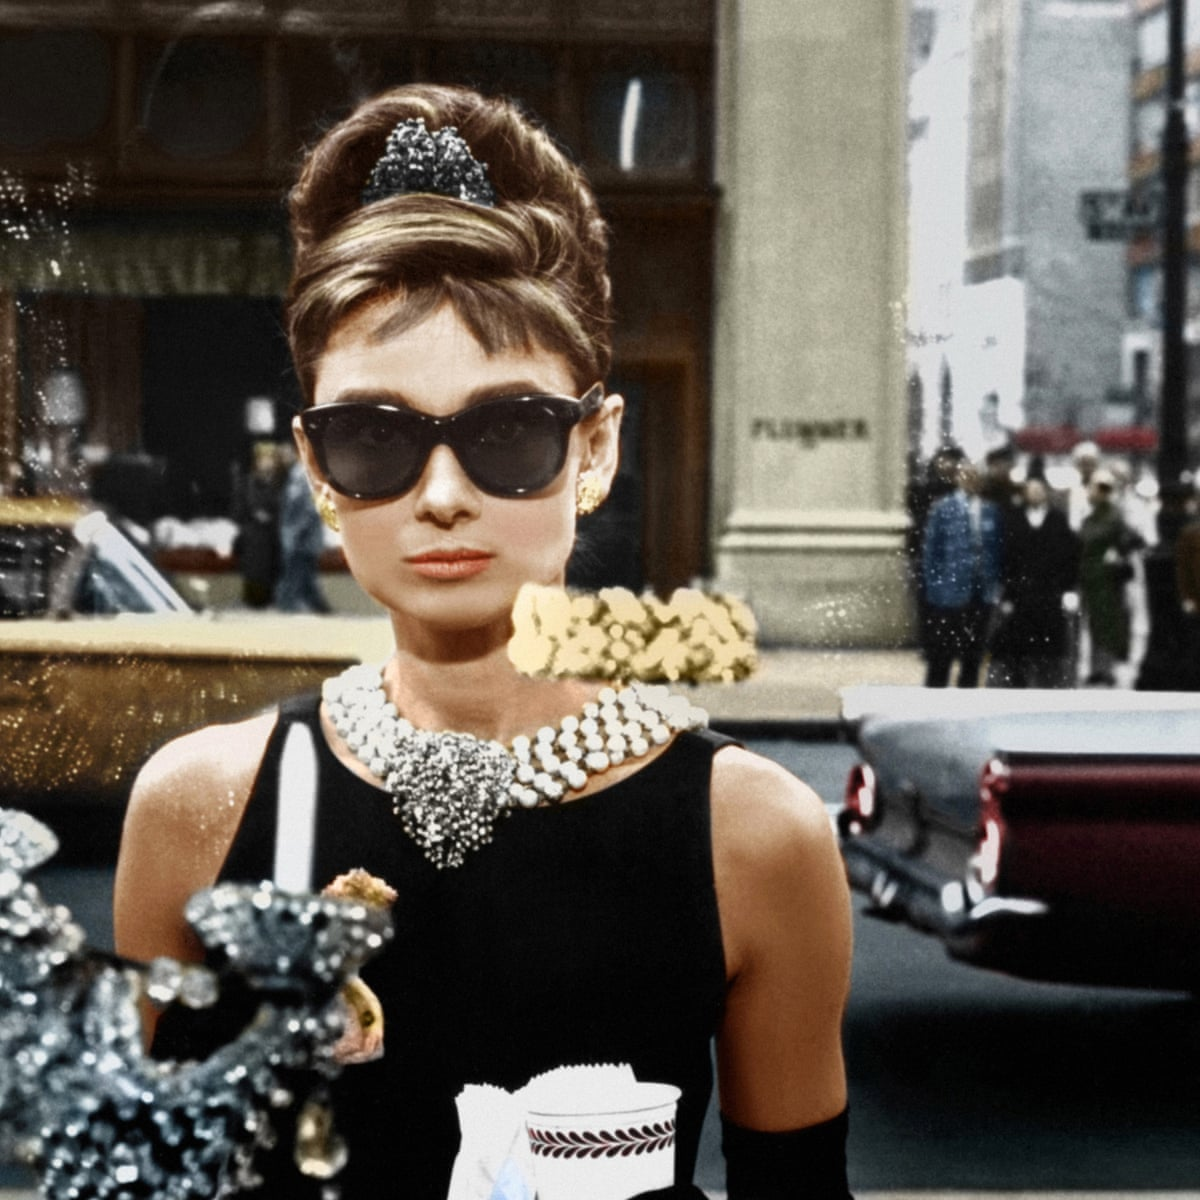 Manuscript shows how Truman Capote renamed his heroine Holly Golightly |  Truman Capote | The Guardian